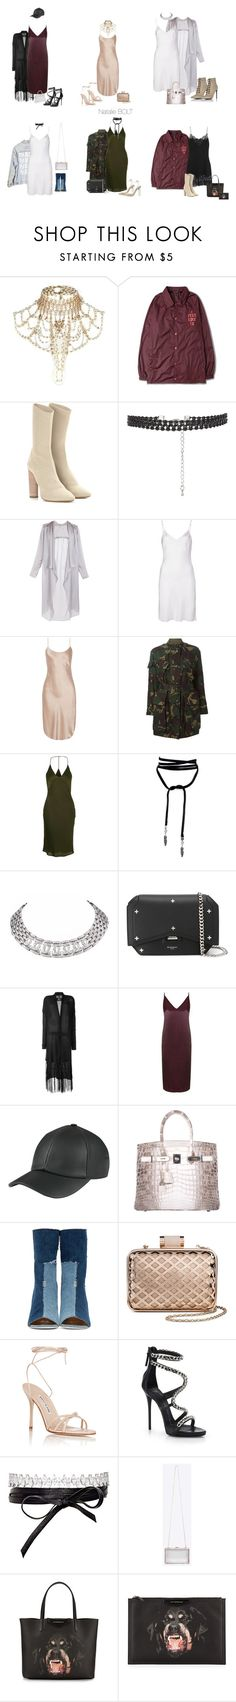 """No. 55 // 56 // 57 // 58 // 59 // 60"" by beautybolt on Polyvore featuring River Island, Givenchy, adidas Originals, Asilio, Organic by John Patrick, Maiyet, Balenciaga, Burberry, Topshop and YEEZY Season 2  beautybolt.wordpress.com"